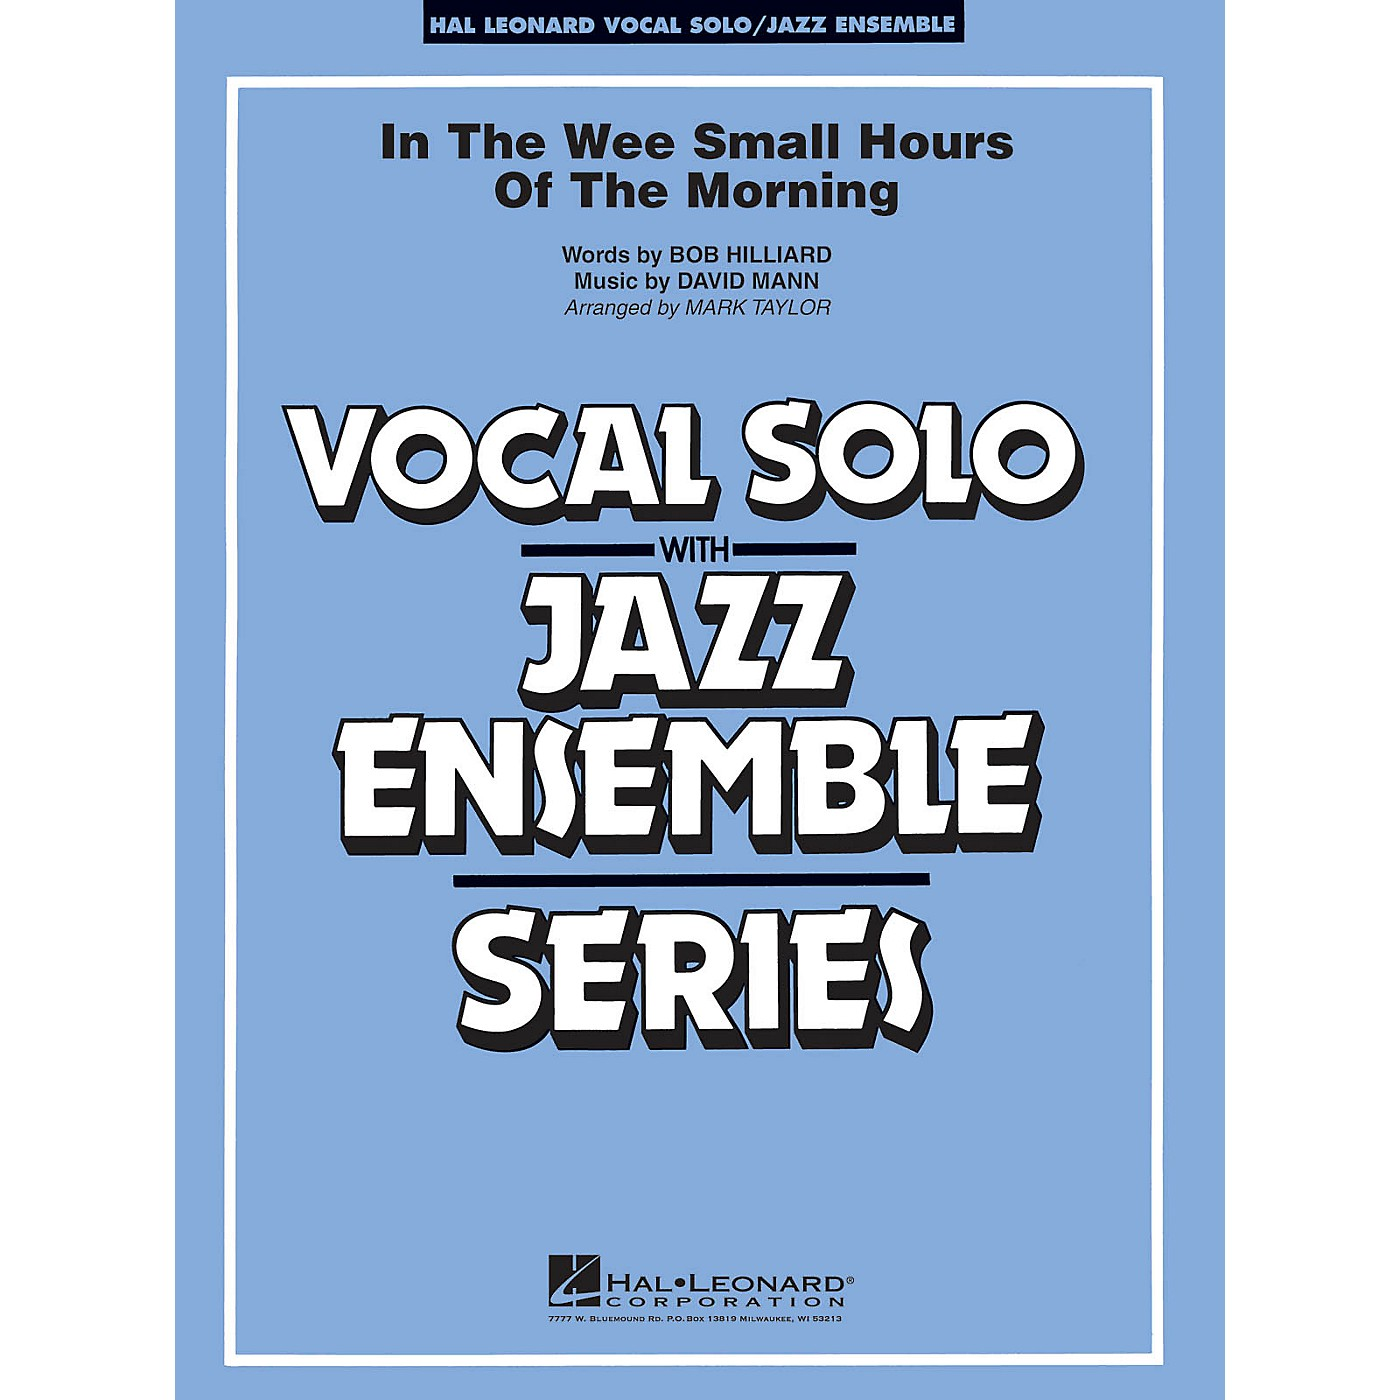 Hal Leonard In the Wee Small Hours of the Morning (Key: B-flat) Jazz Band Level 3 thumbnail